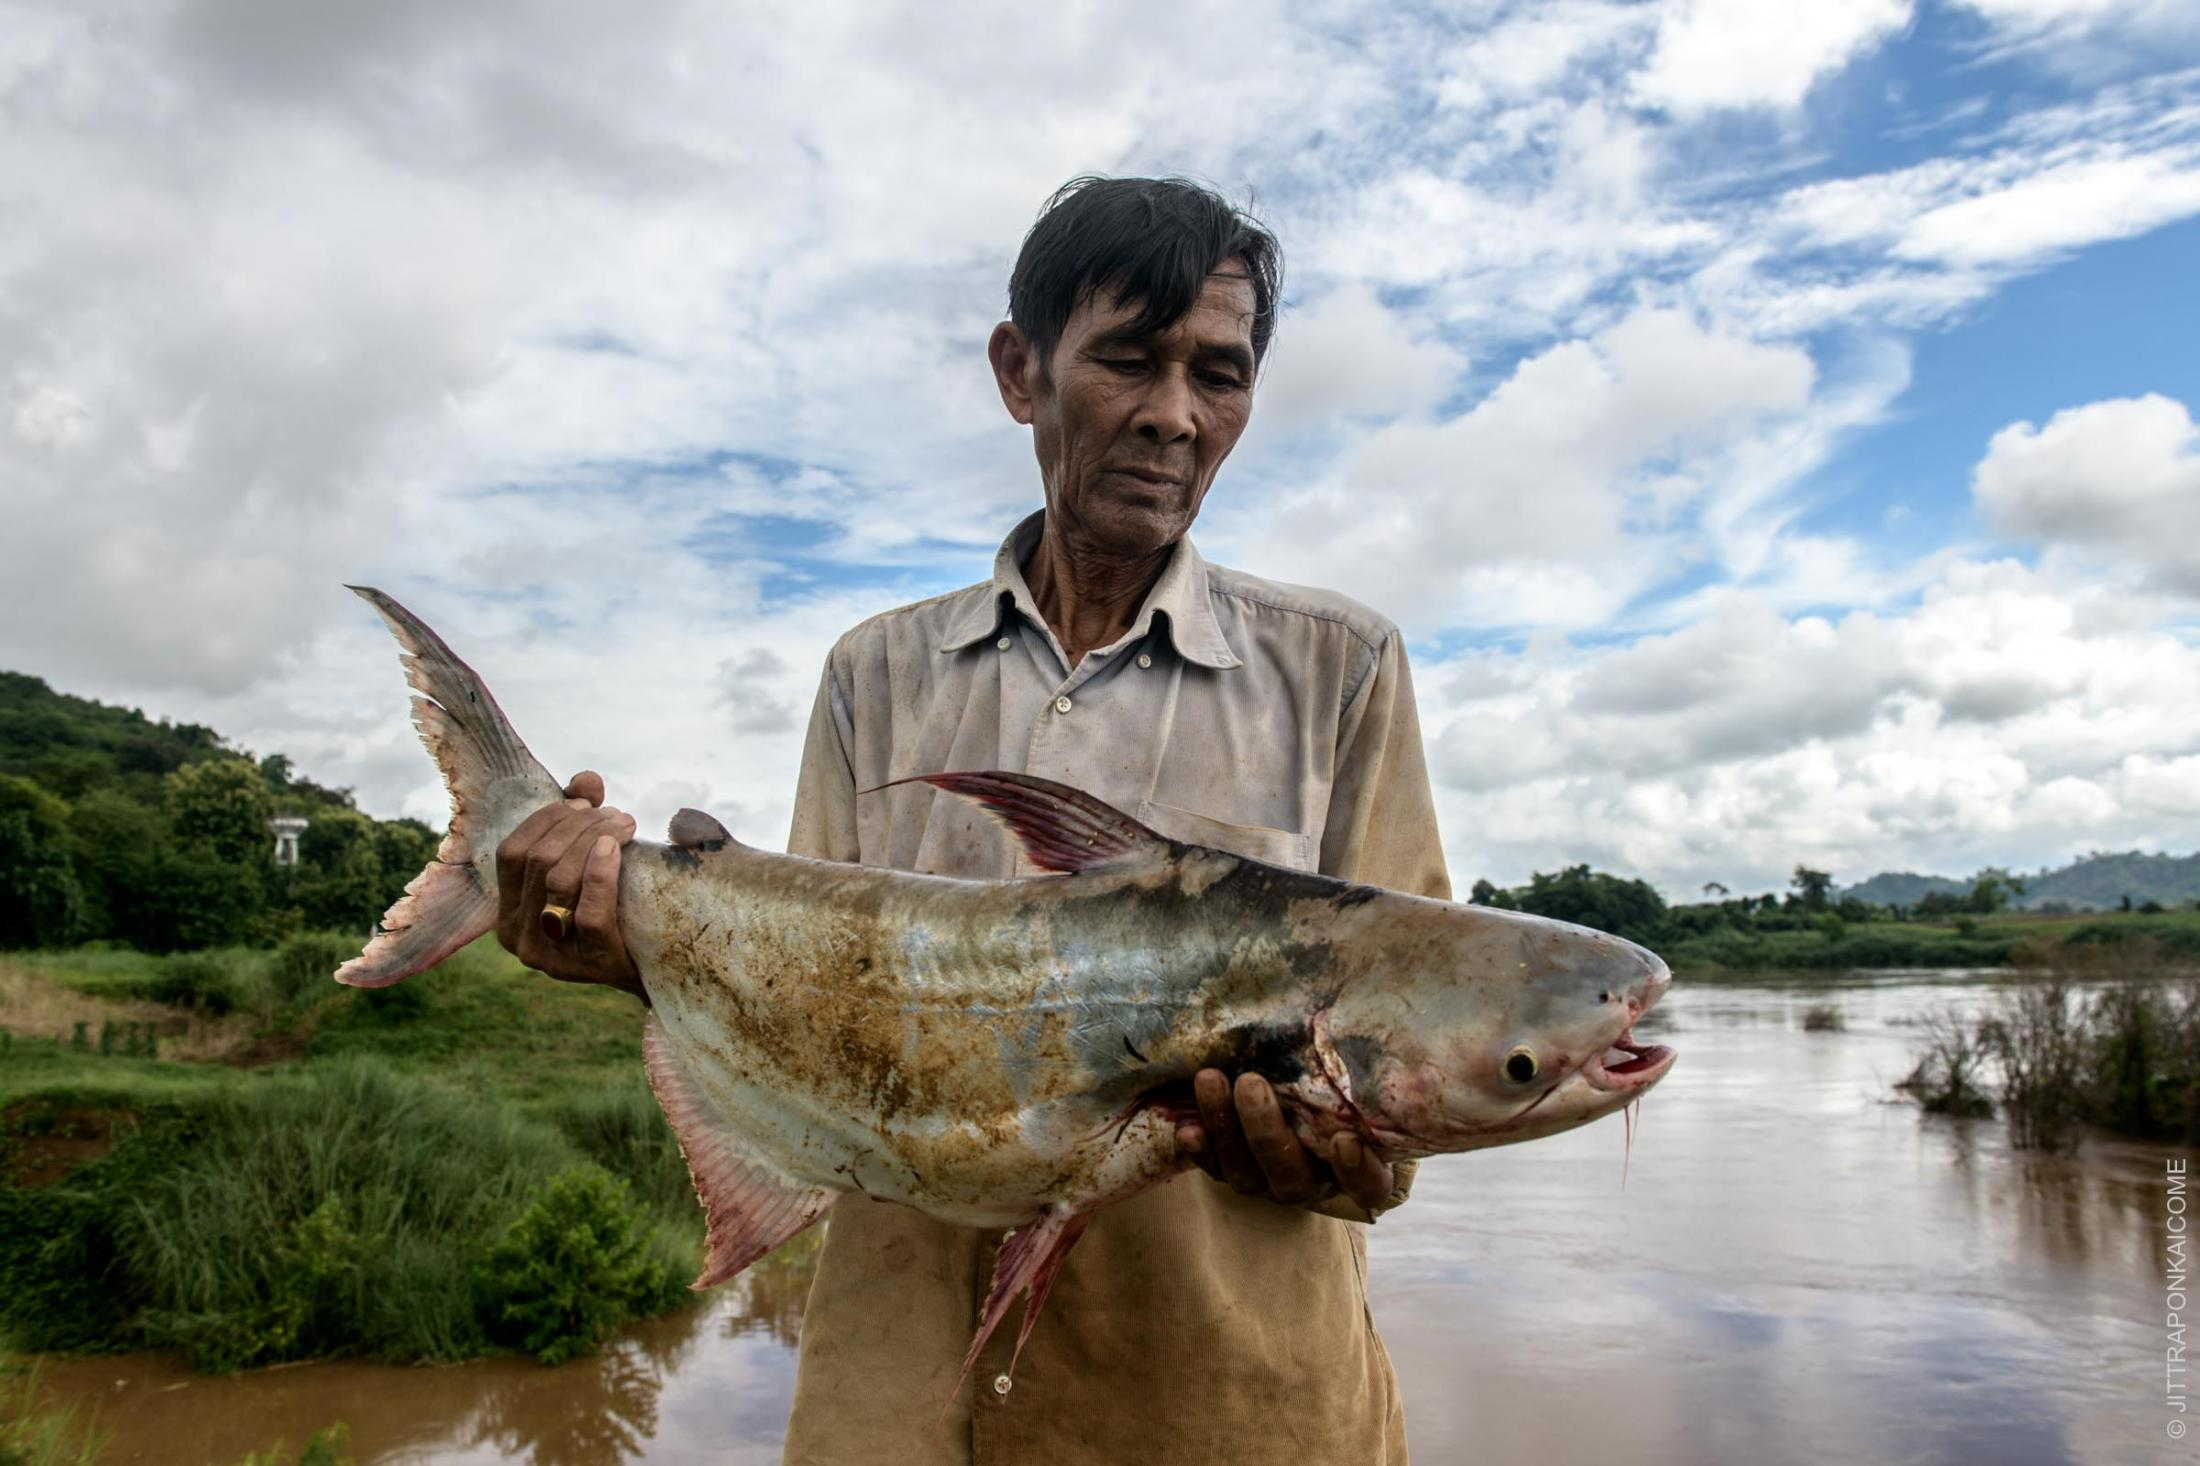 Supol Khamthong, a 67 years old fisherman, caught a black-eared catfish weighing 5 kilograms. As the riverine ecosystem of the Mekong River is affected by the many upstream dams, water levels are lower than usual, negatively influencing this specie's reproductive cycle. Suppose more dams are built in the Mekong basin, this fish could become endangered. In Nong Khai, Thailand – August 2020.